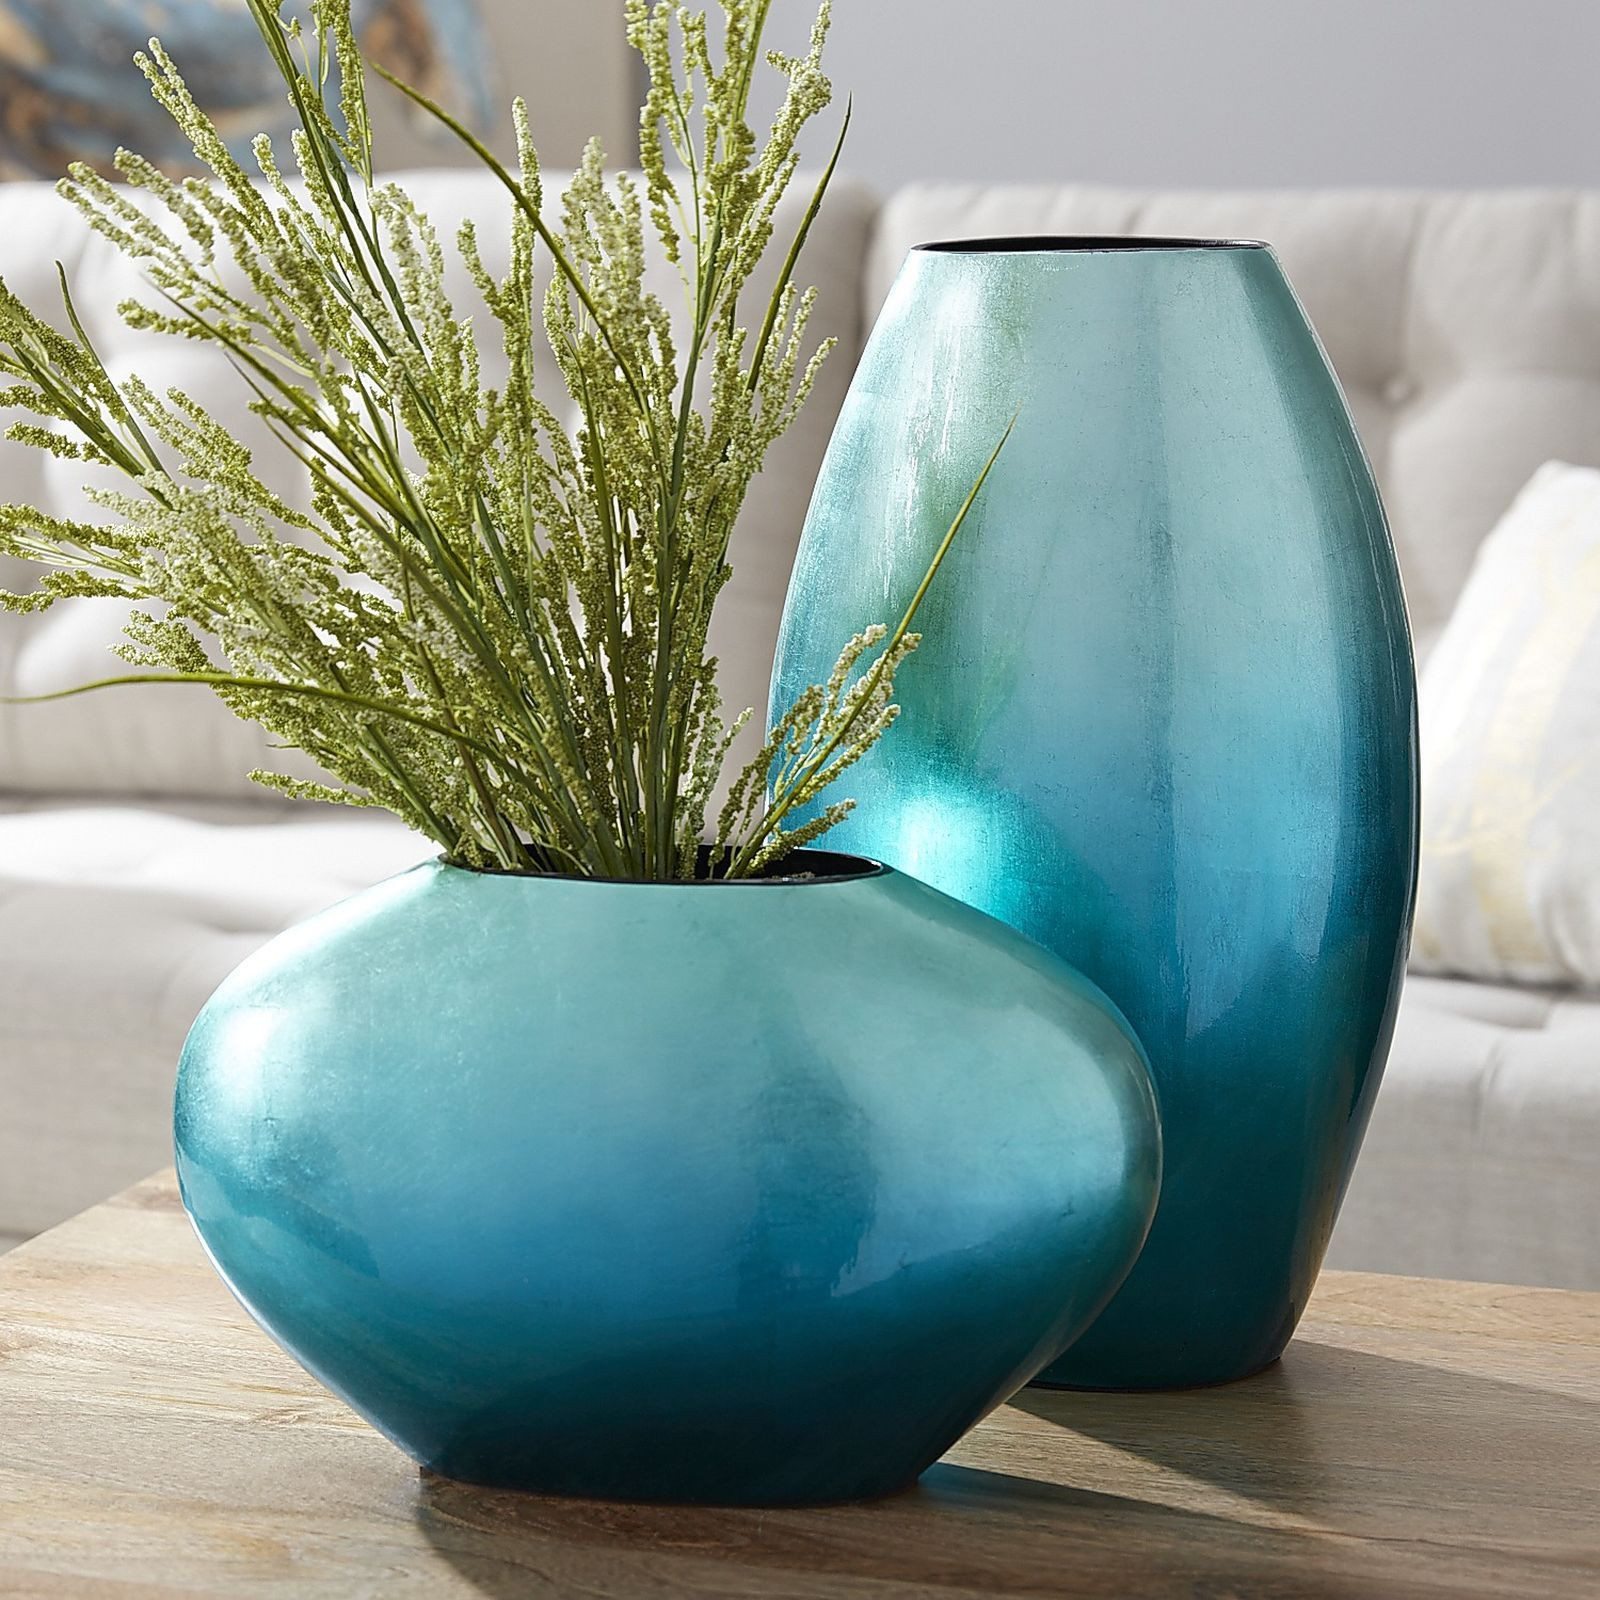 cracked glass vases wholesale of oval glass vase gallery gem oval starburst chandelier 48 plb0039 0d inside oval glass vase stock sinuous lines and iridescent color make these ceramic vases